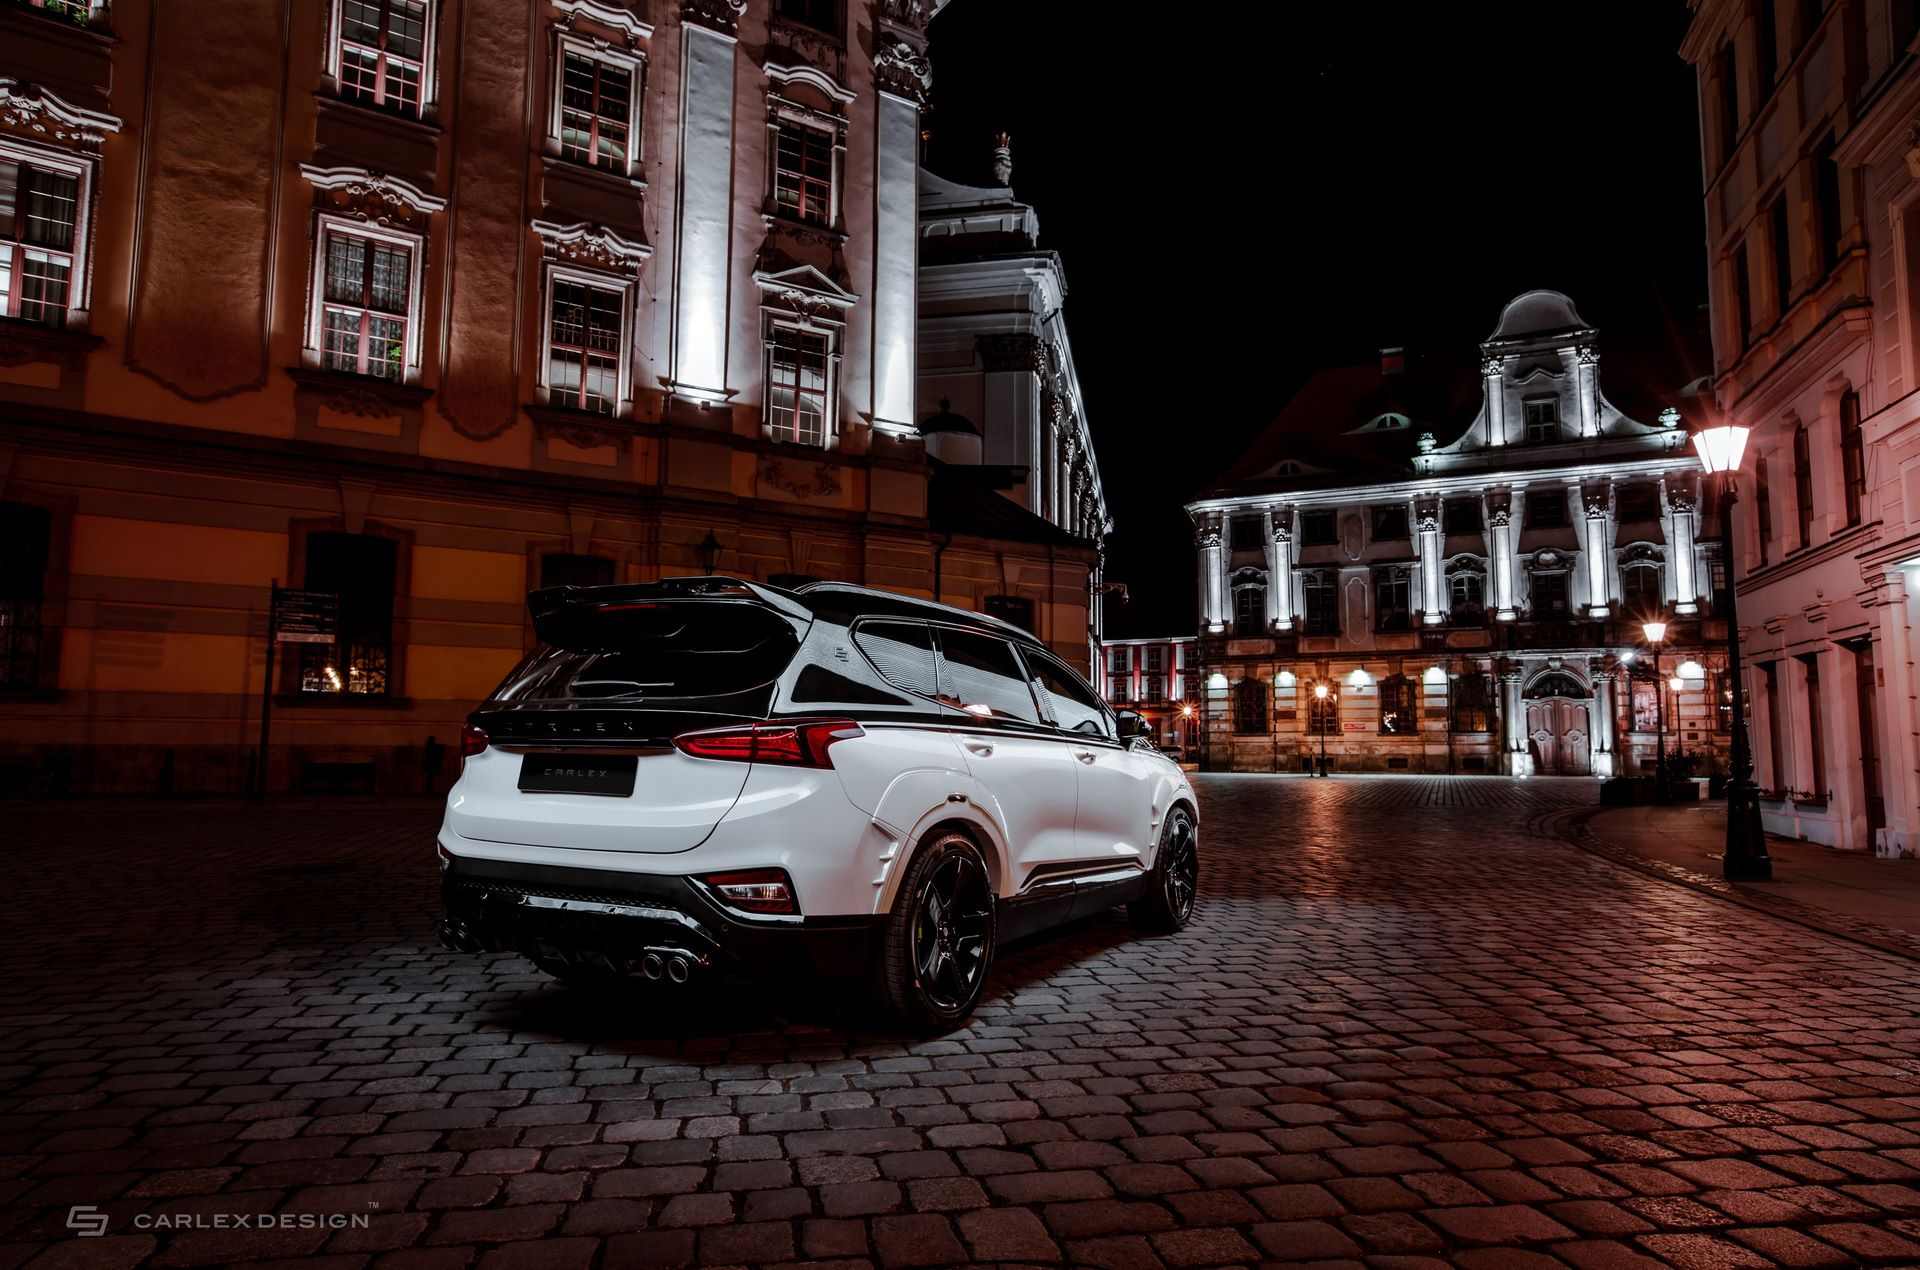 Hyundai-Santa-Fe-Urban-Edition-by-Carlex-Design-10